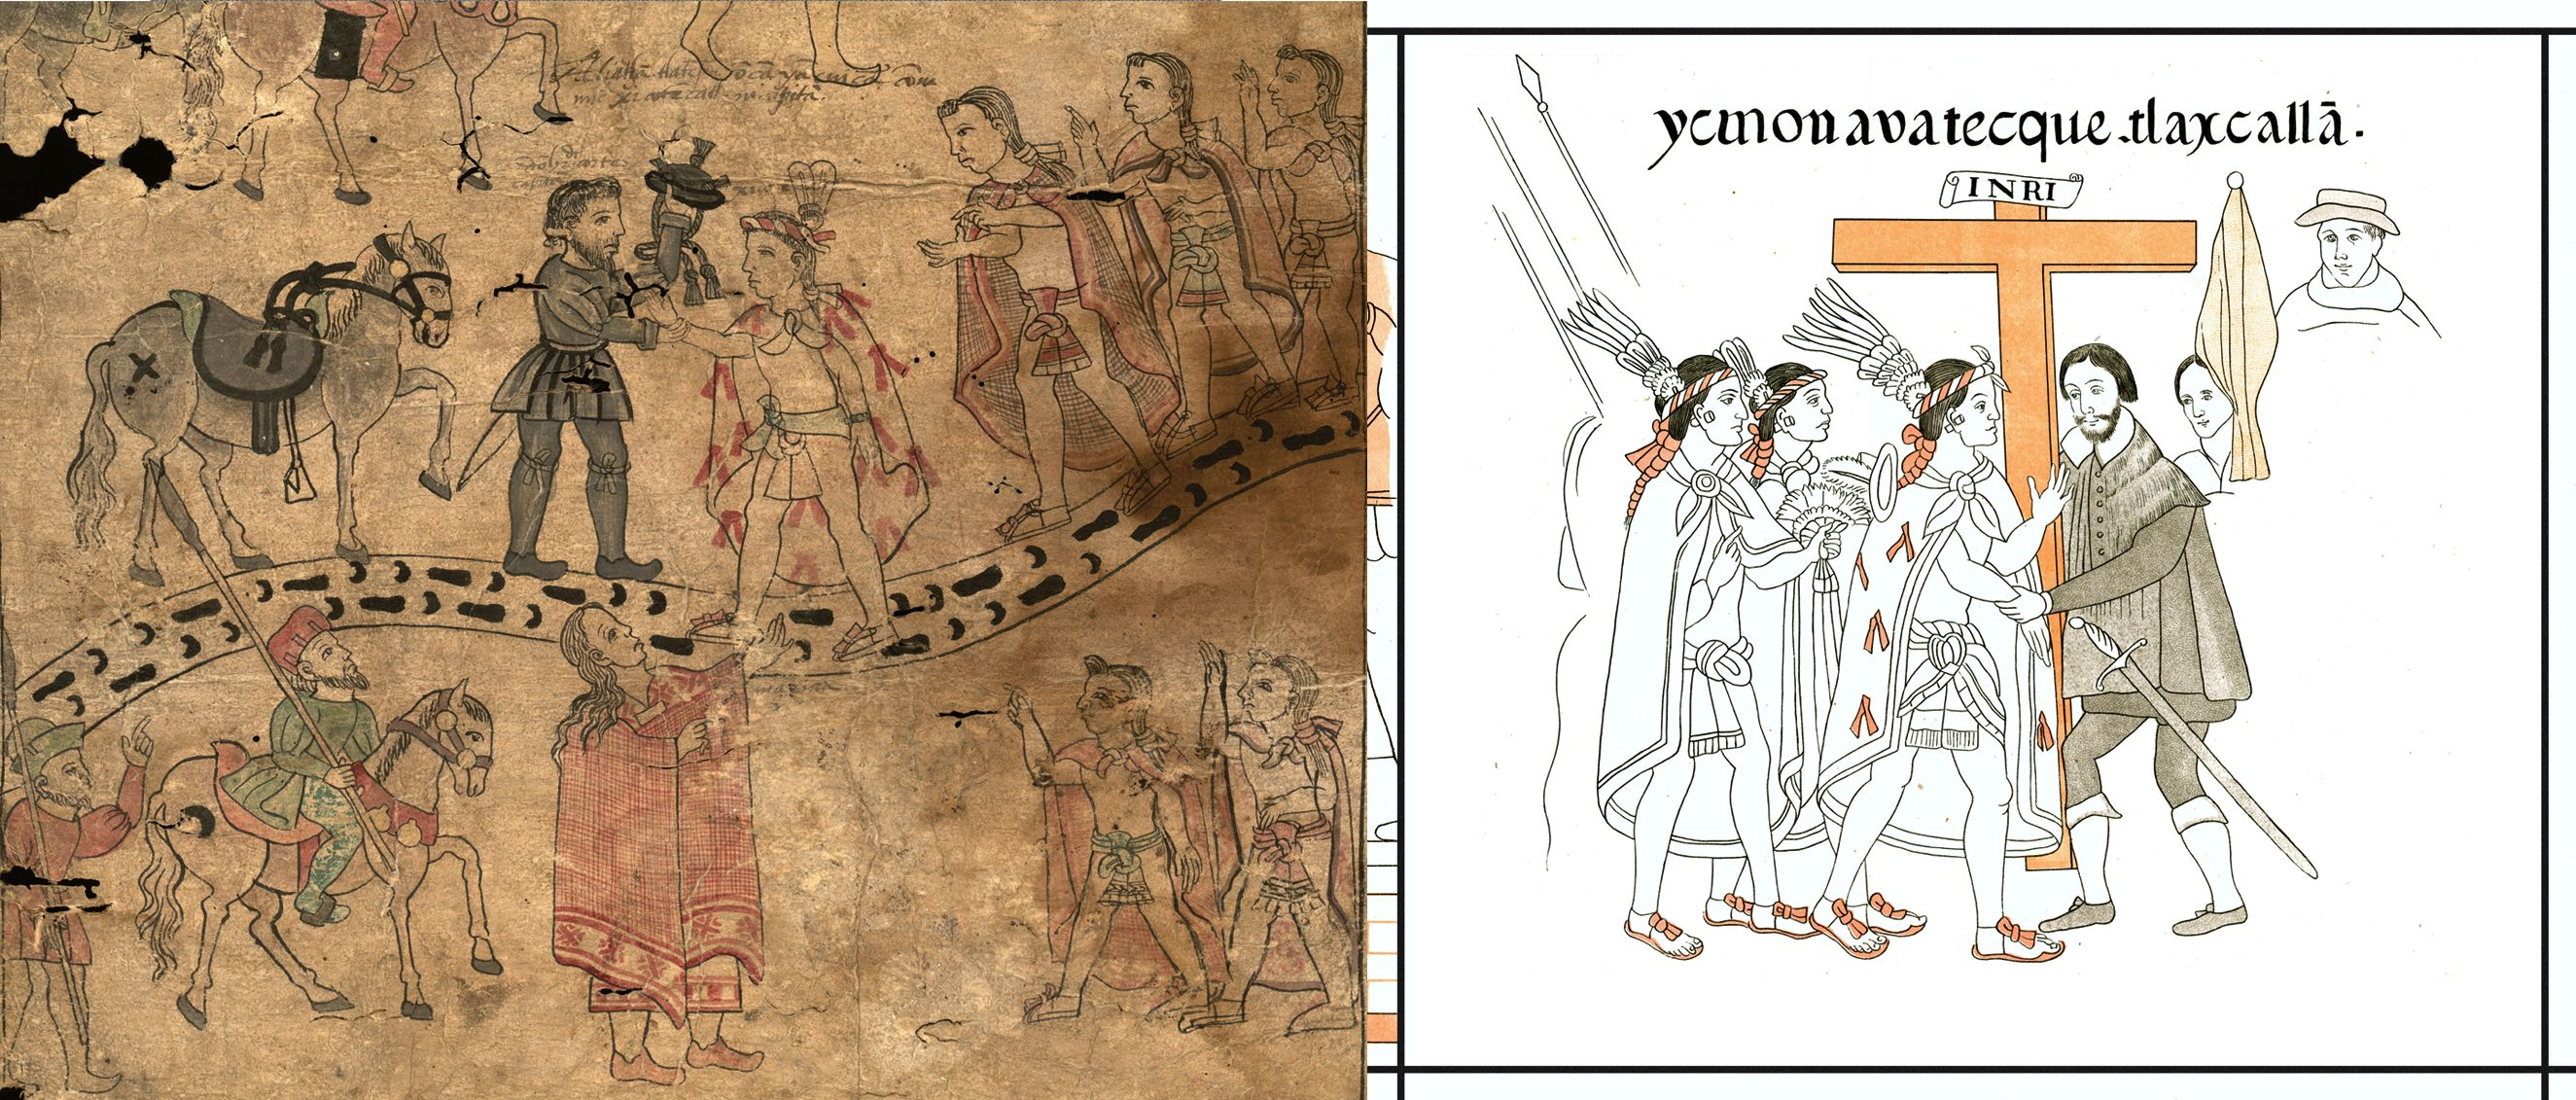 FIGURE 9. Comparison of a scene from the Texas Fragment with its cognate in the Lienzo de Tlaxcala (cell 5).